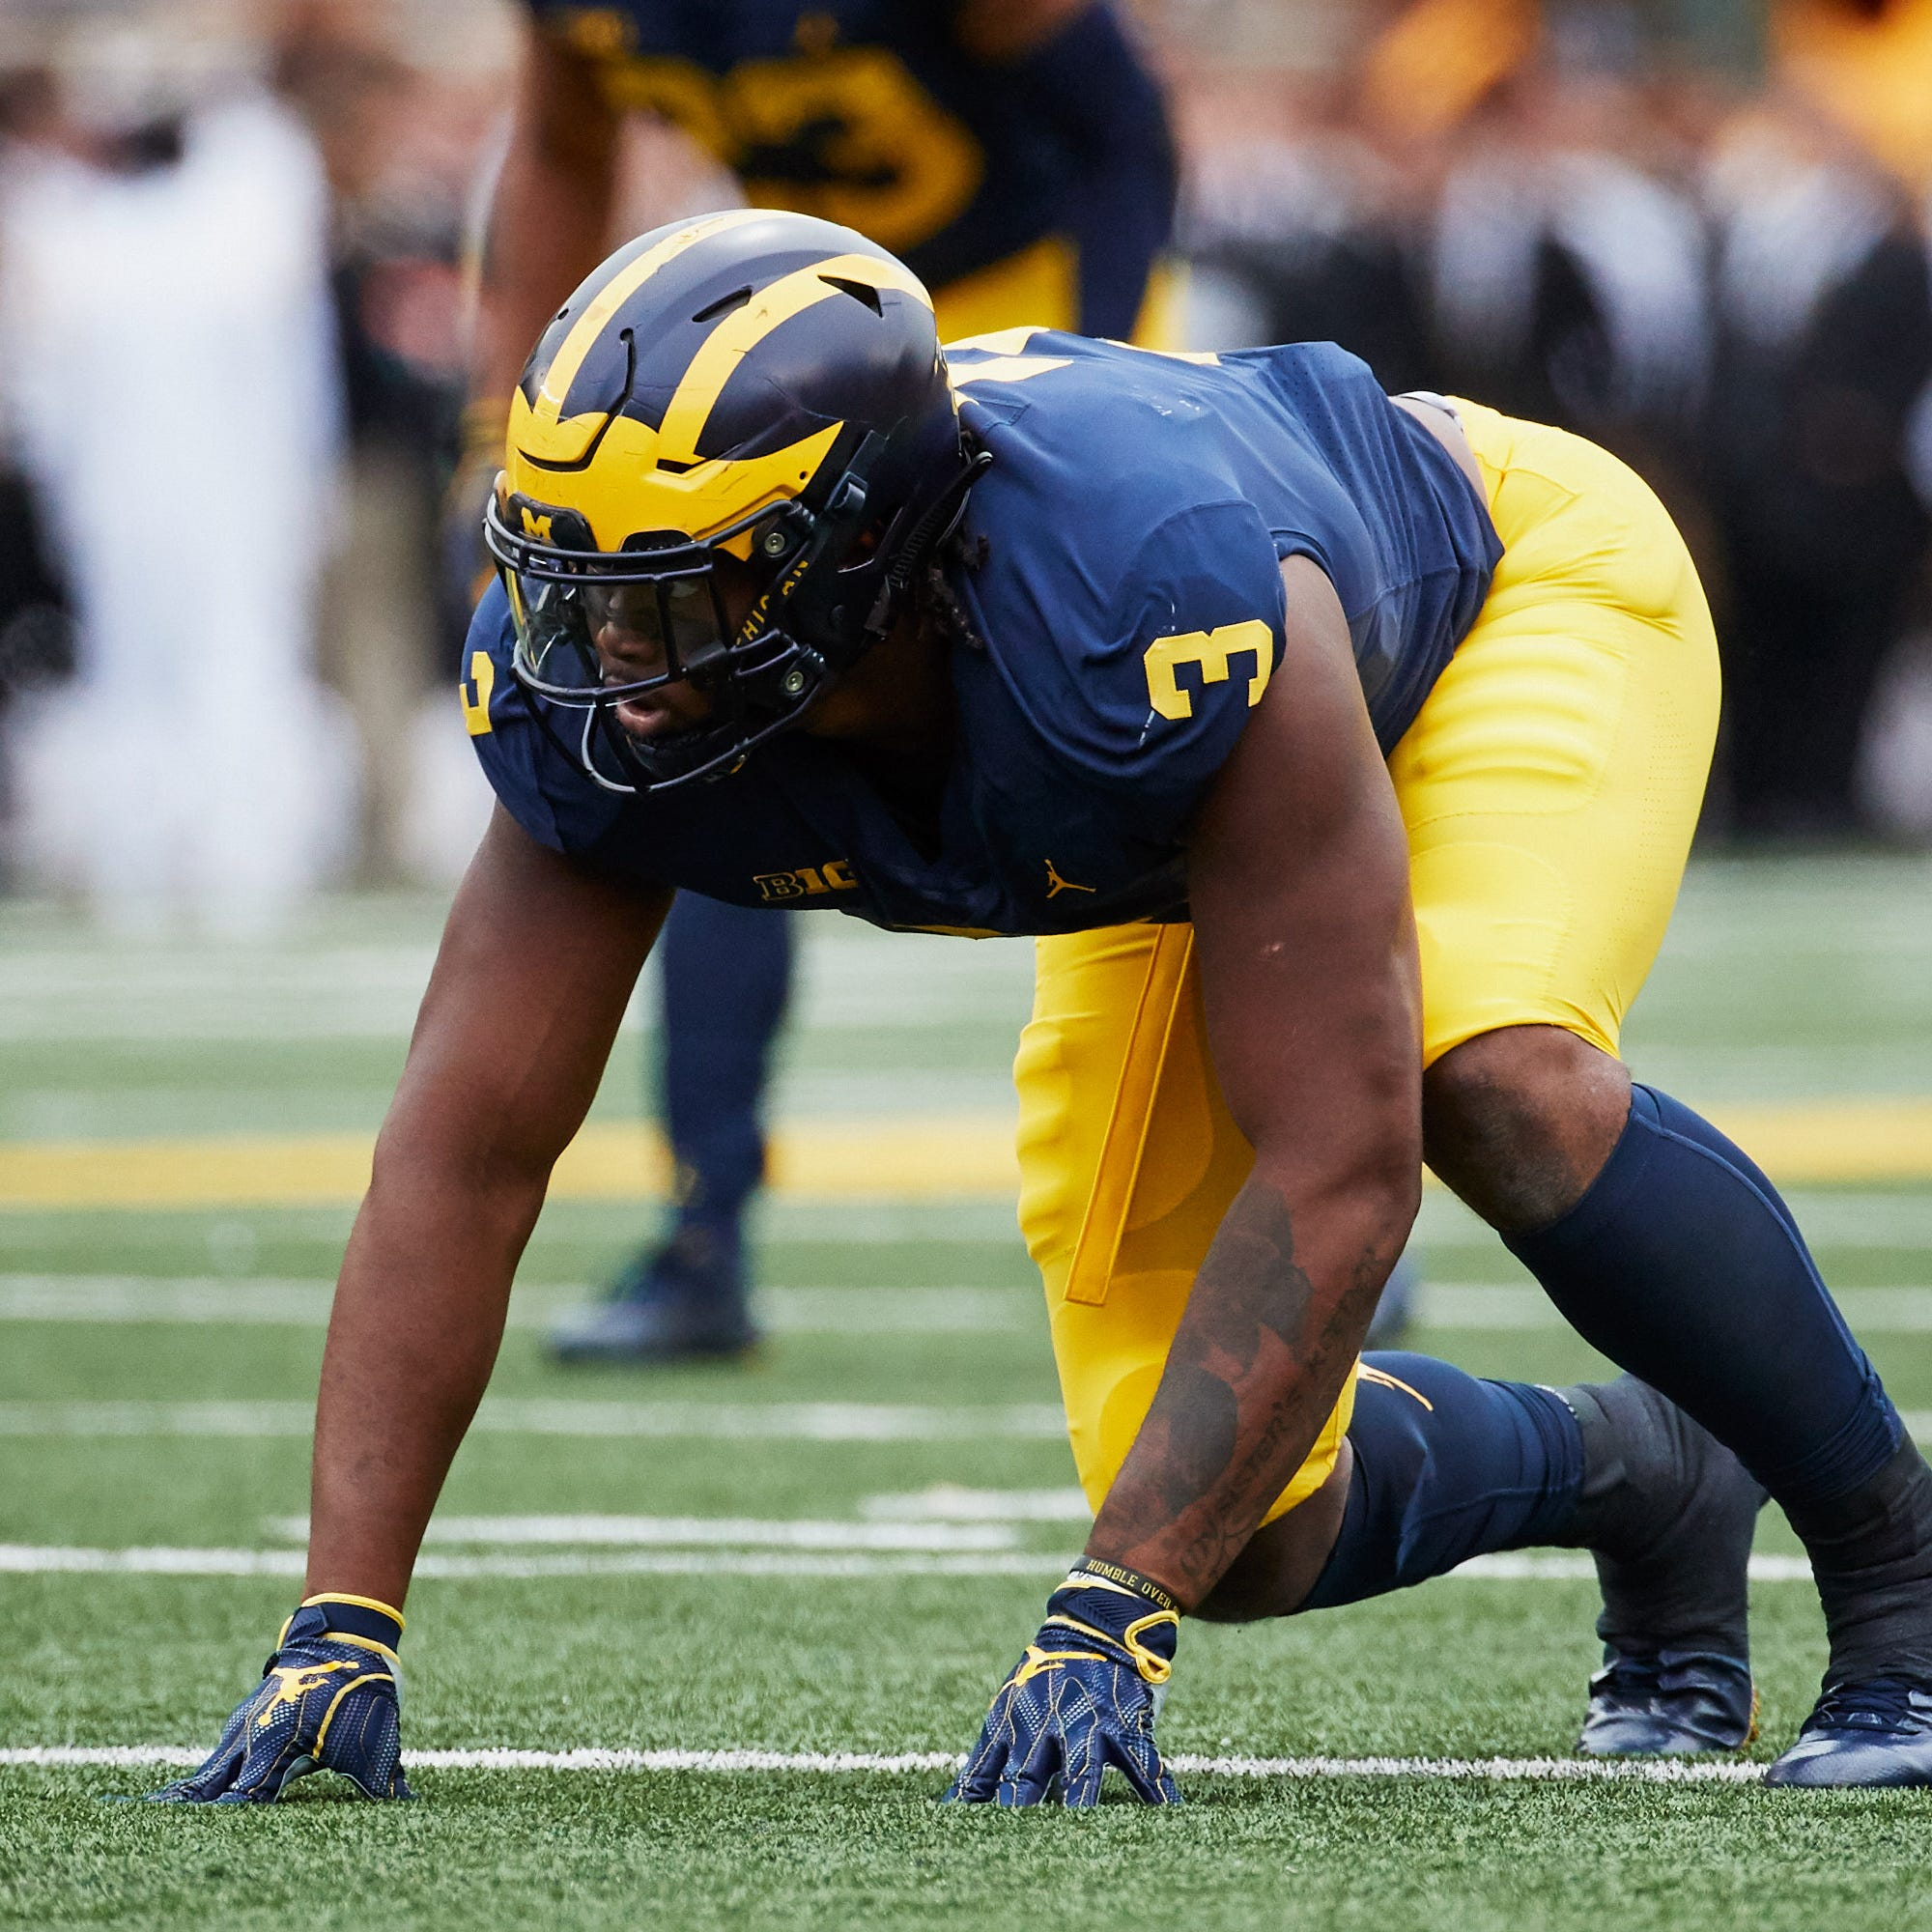 Michigan football not sure if Rashan Gary's out for season with injury